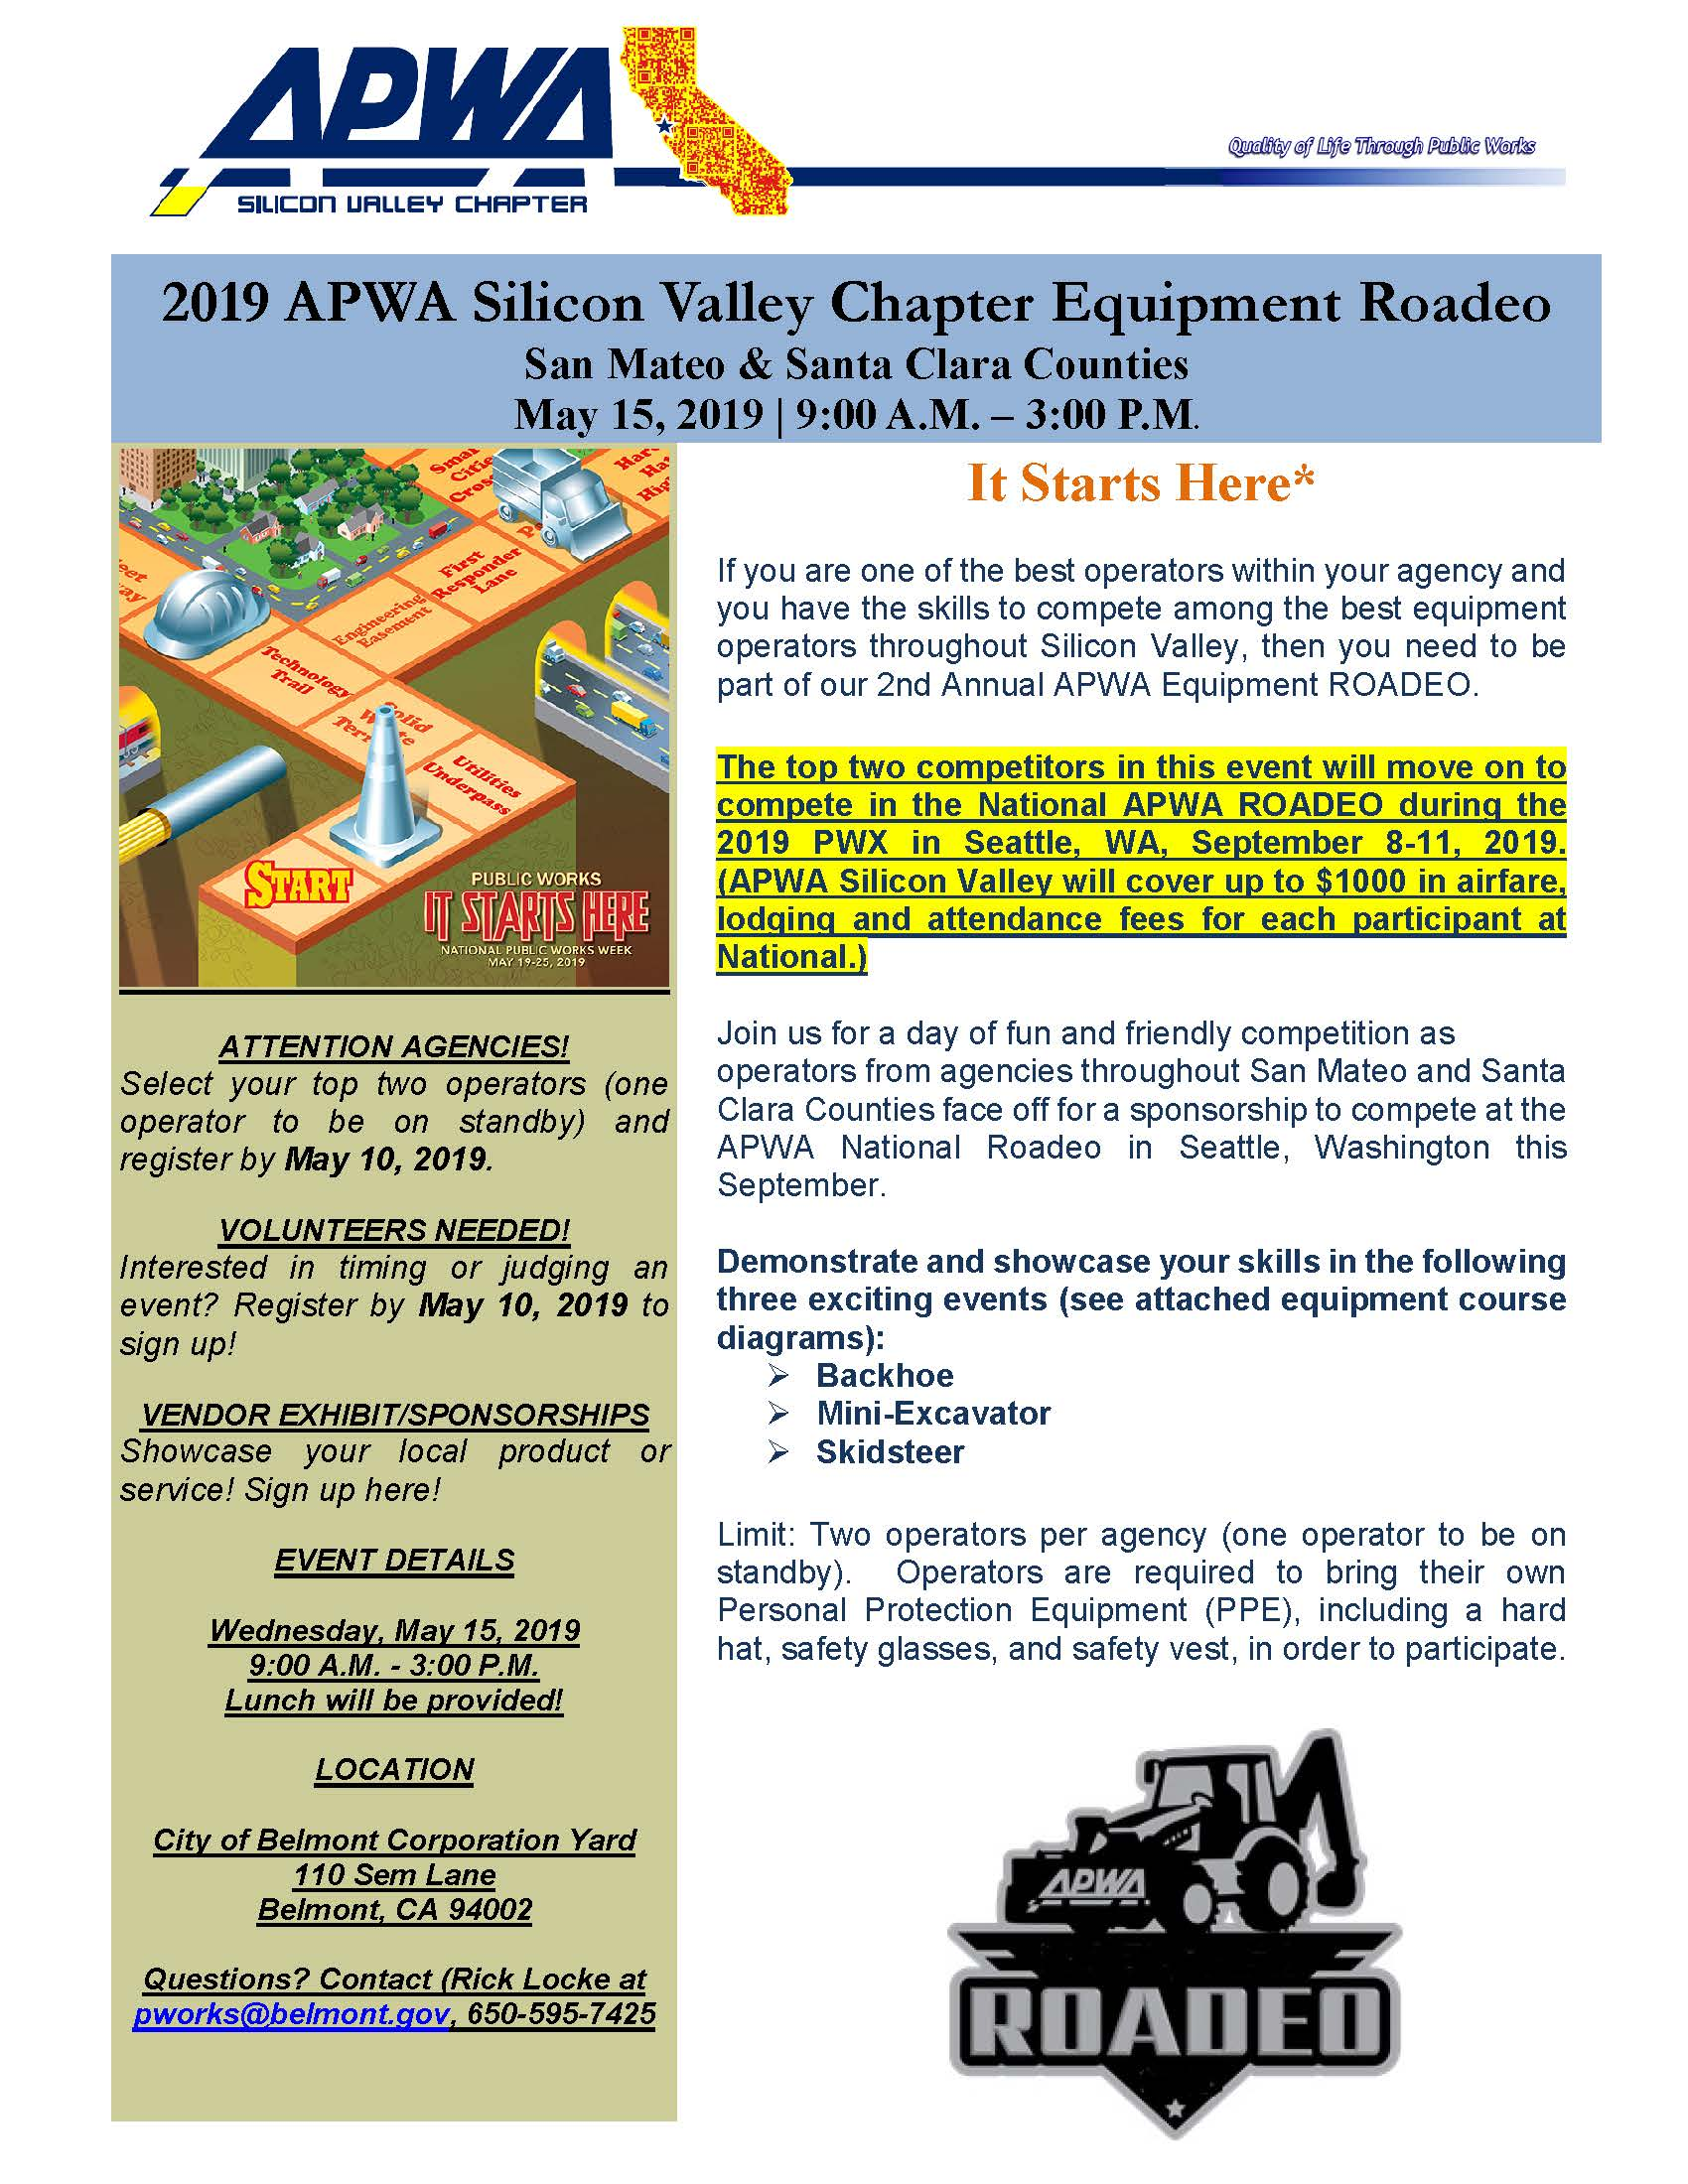 2019 APWA Silicon Valley Chapter Equipment Rodeo